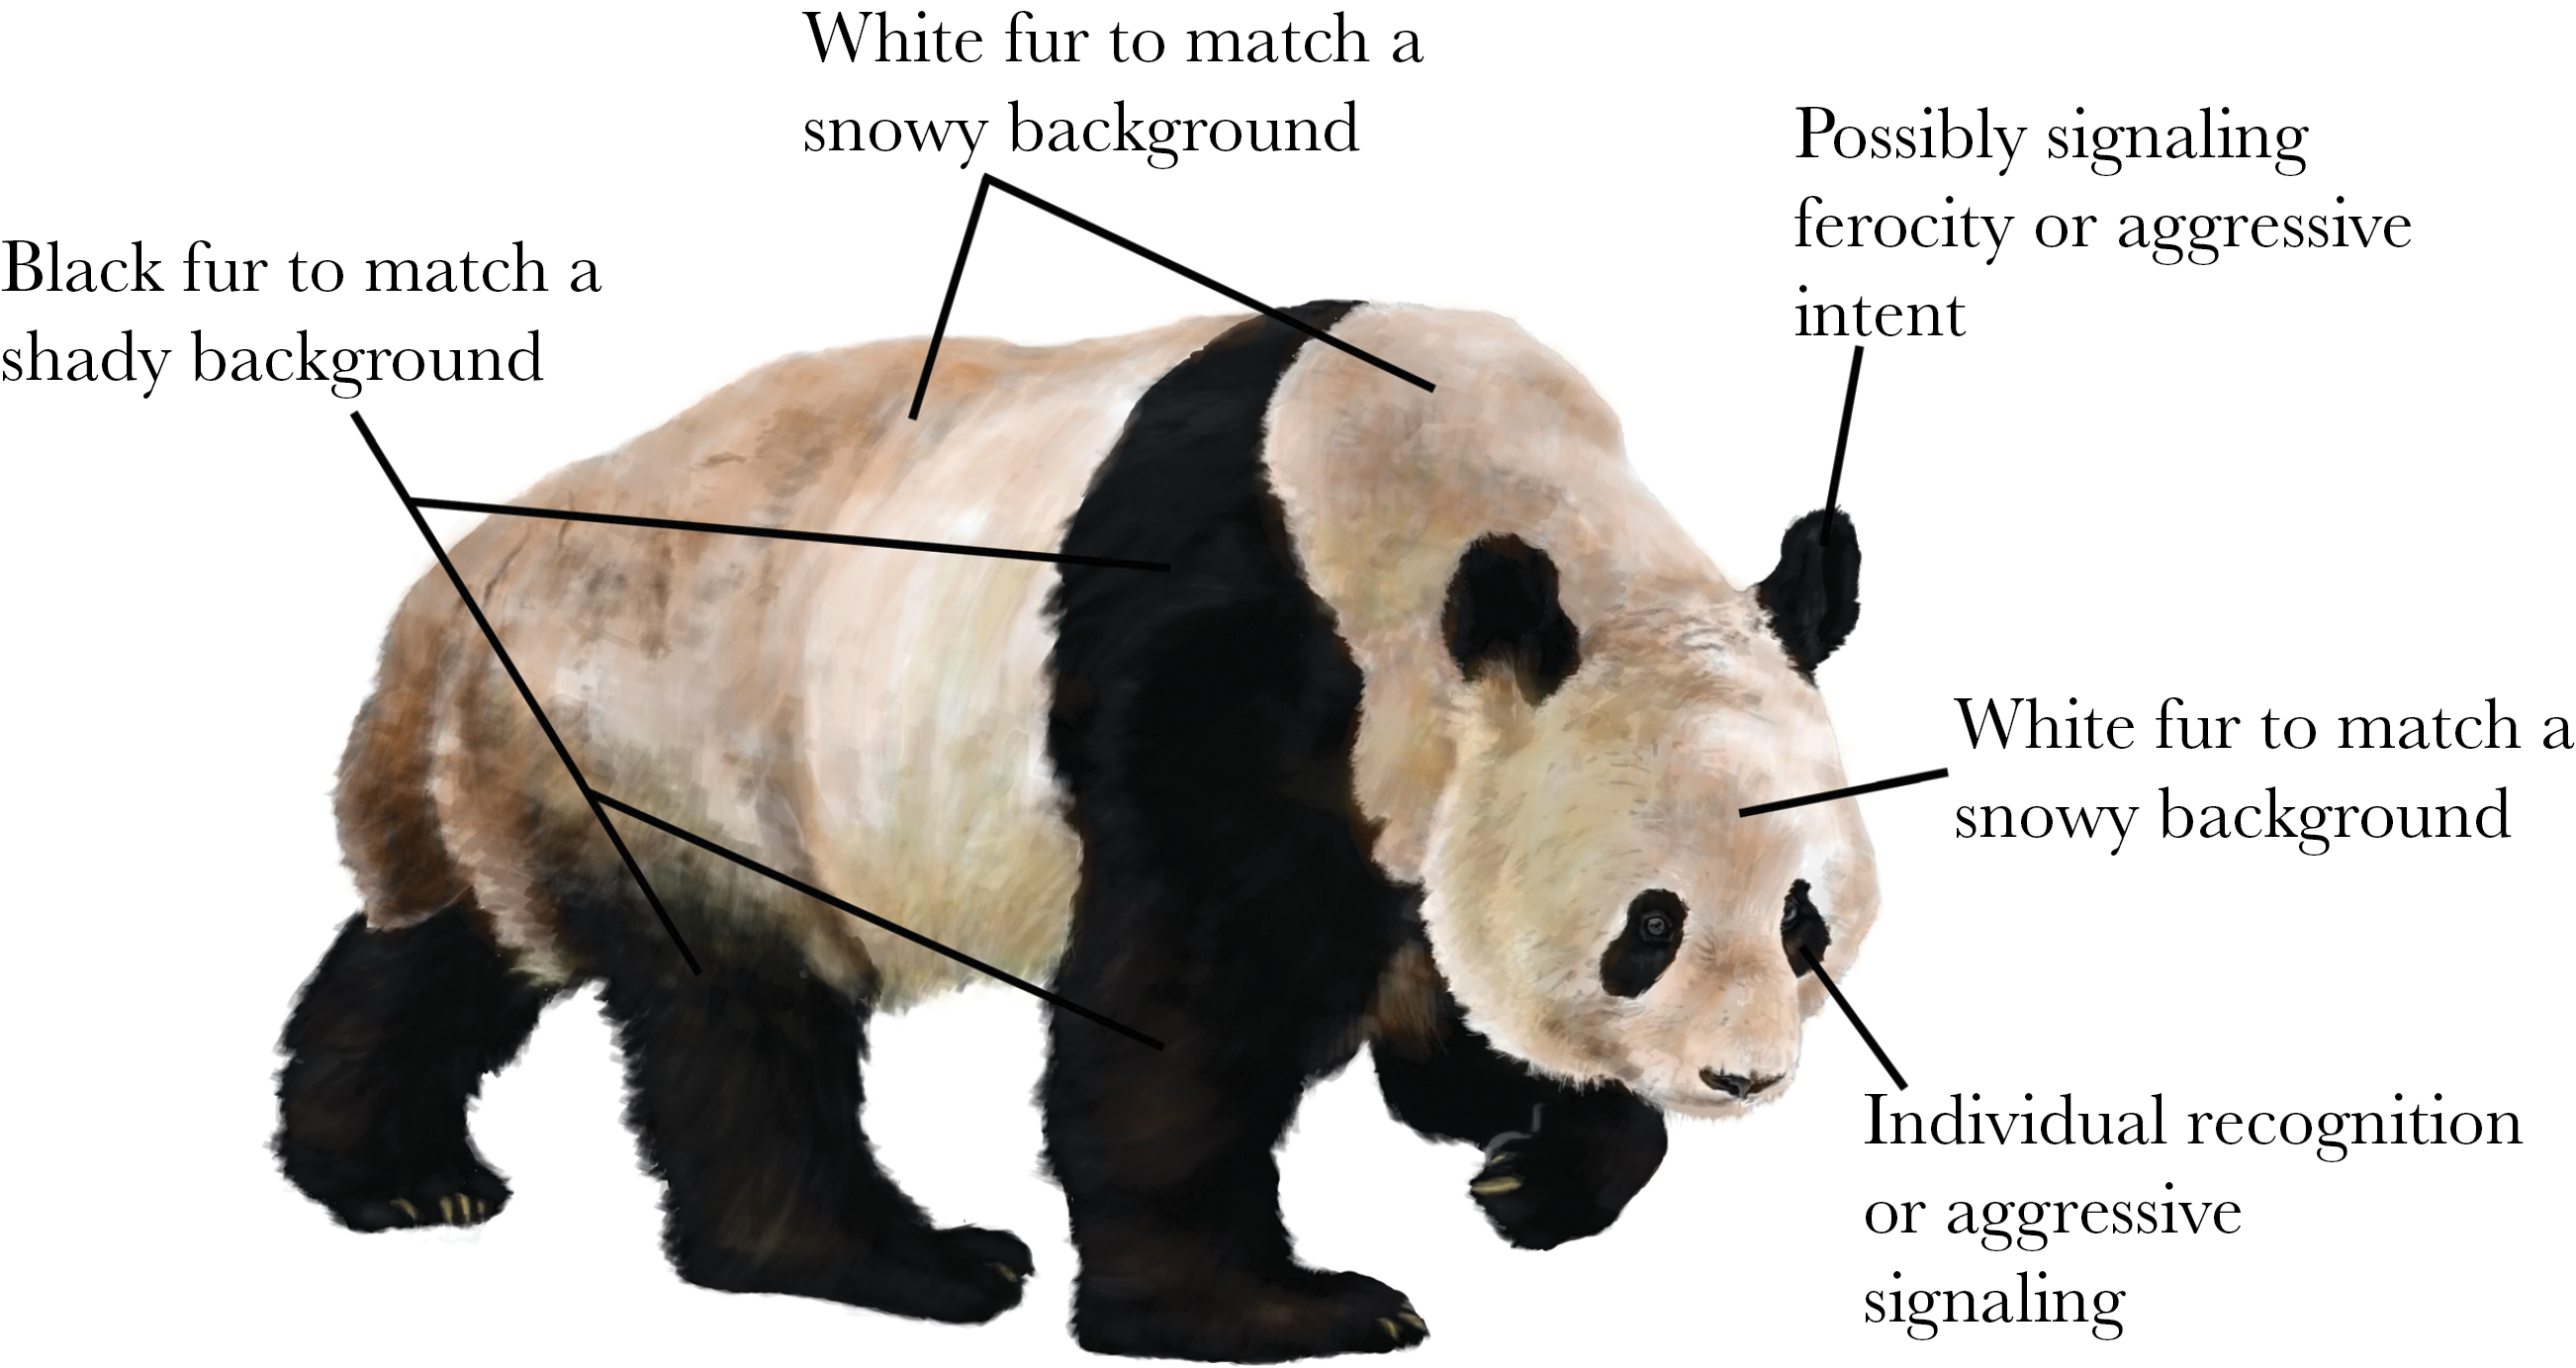 why are giant pandas colored that way? answer it\u0027s complicated Opossum Body Diagram (from paper) working hypotheses for pelage coloration in the giant panda (drawing by ricky patel)